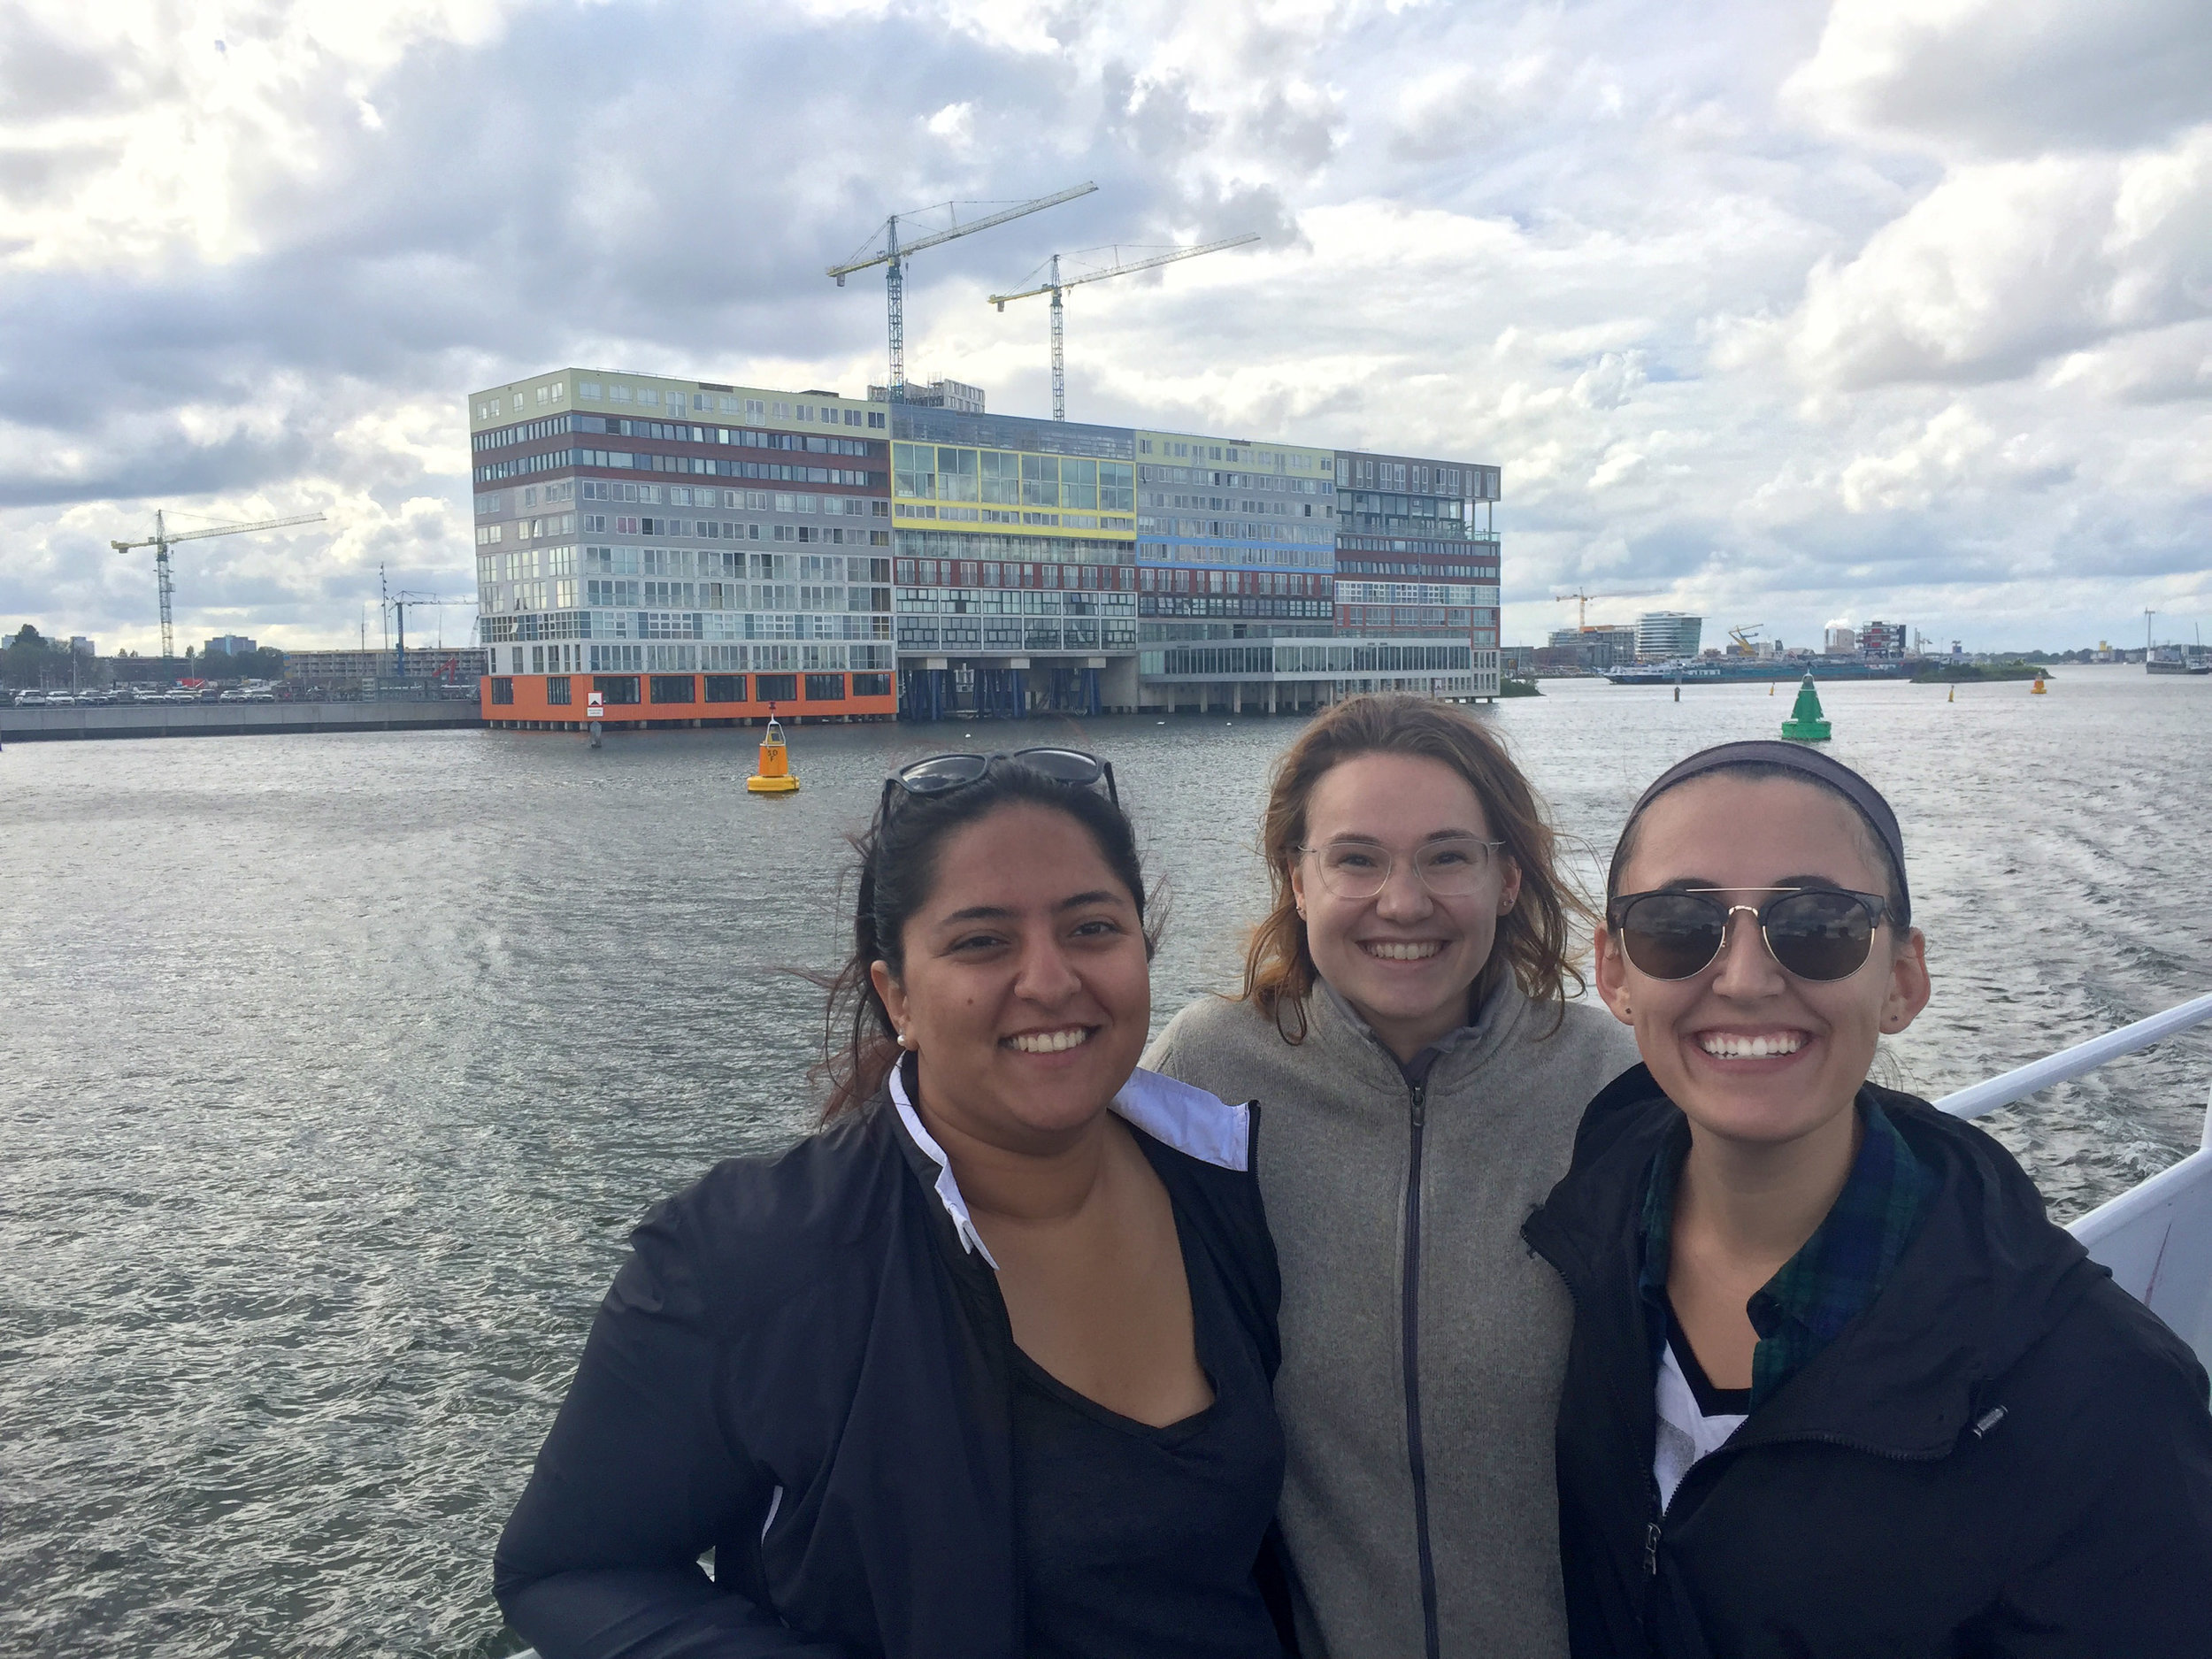 Our day then ended with a boat tour around the IJ. This is me and two of my friends in from of MVRDV's Silodam.